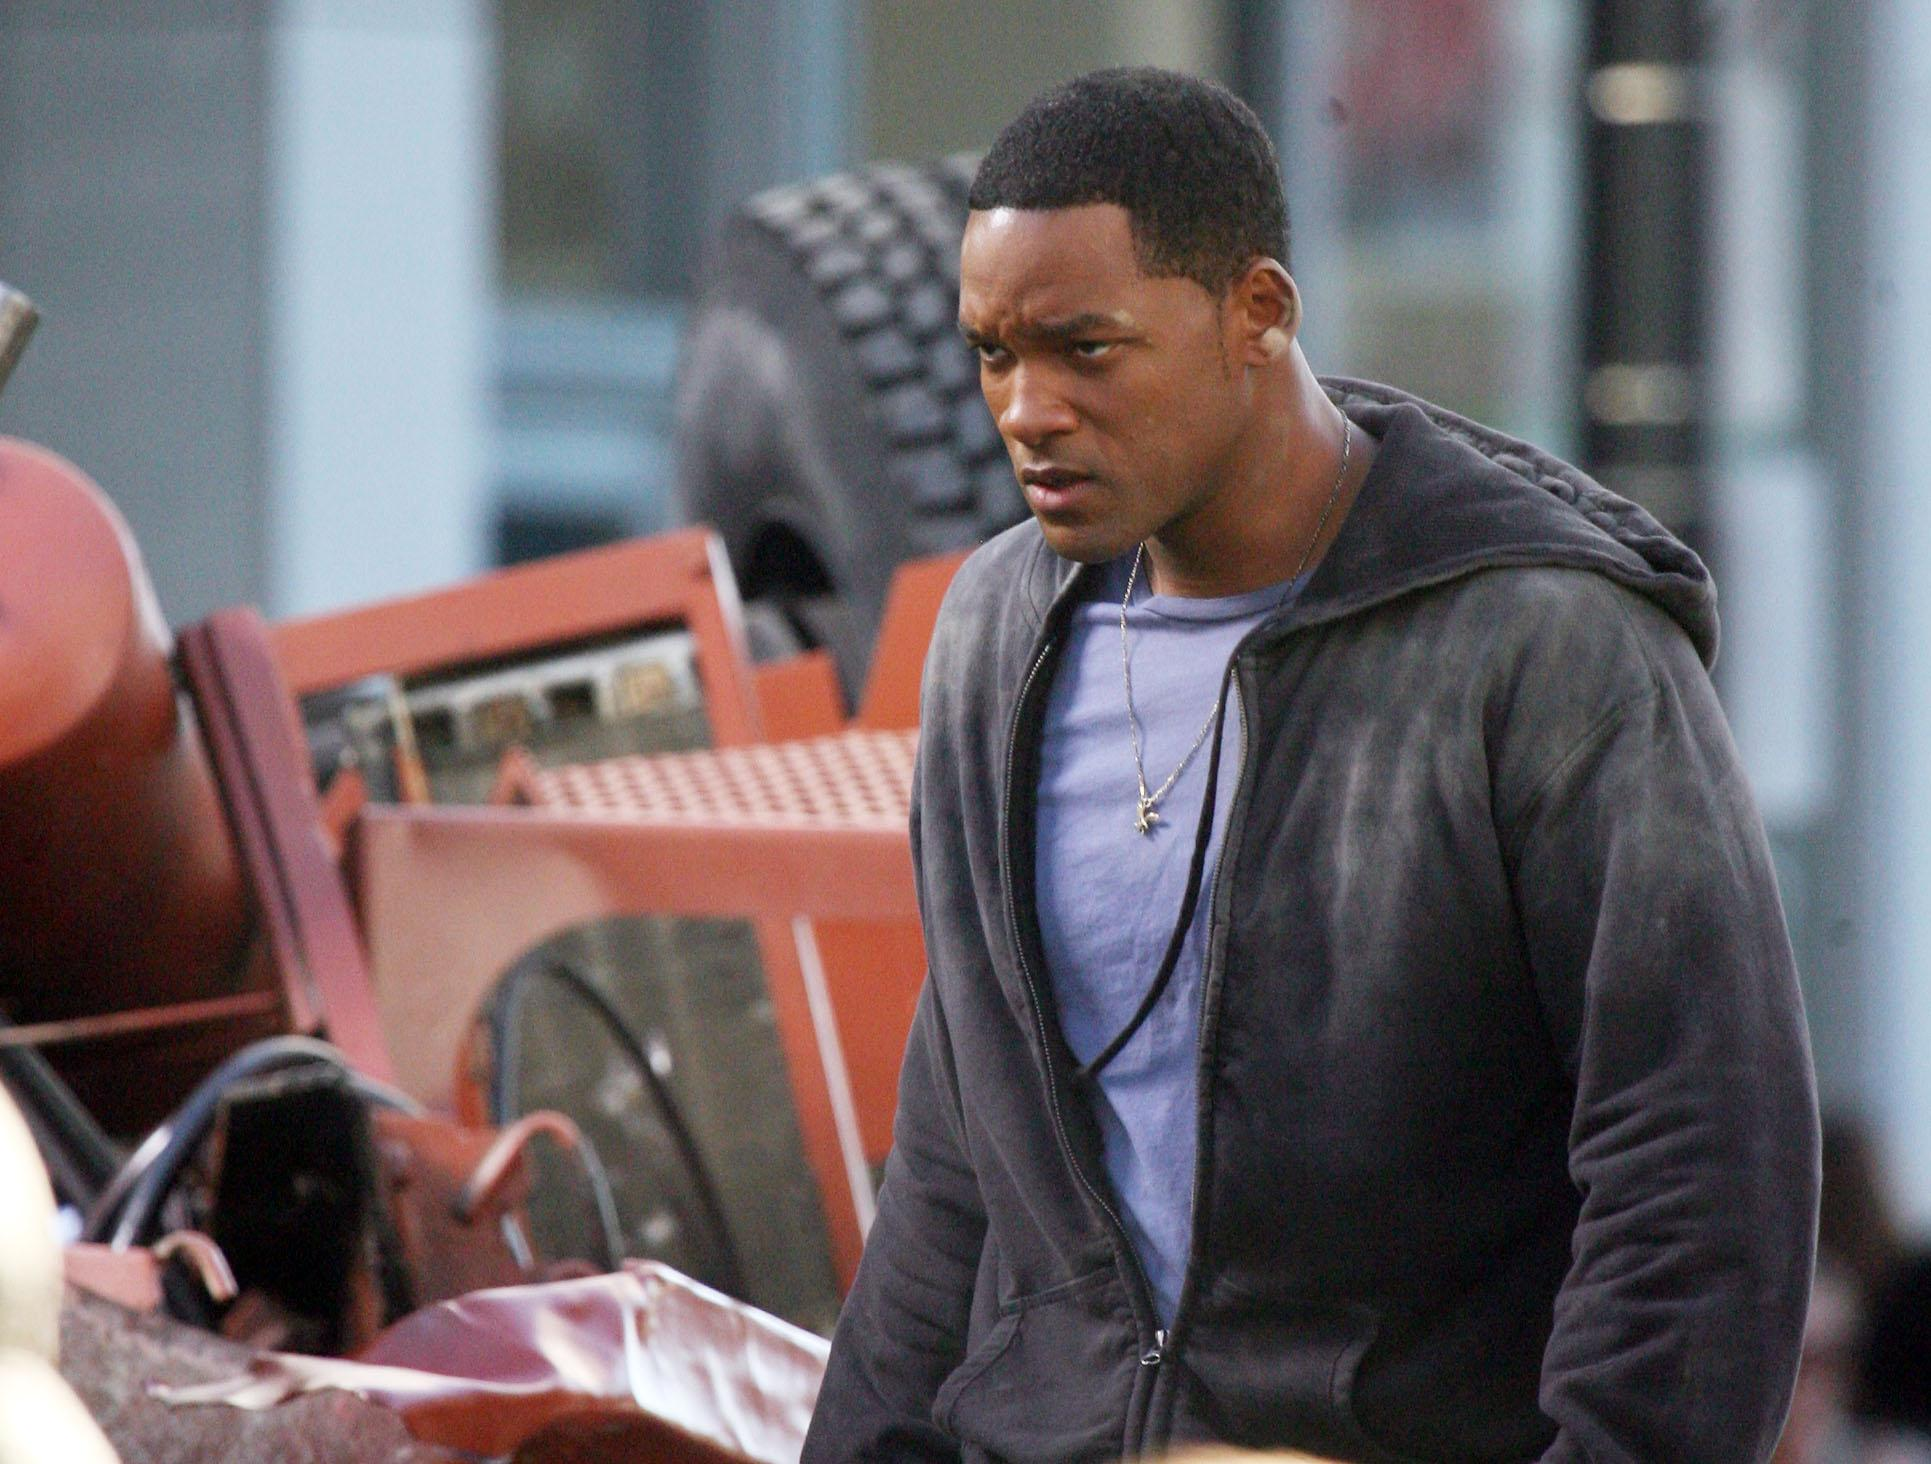 Antihero Hancock was played by Will Smith in the 2008 movie. (Photo: WENN)